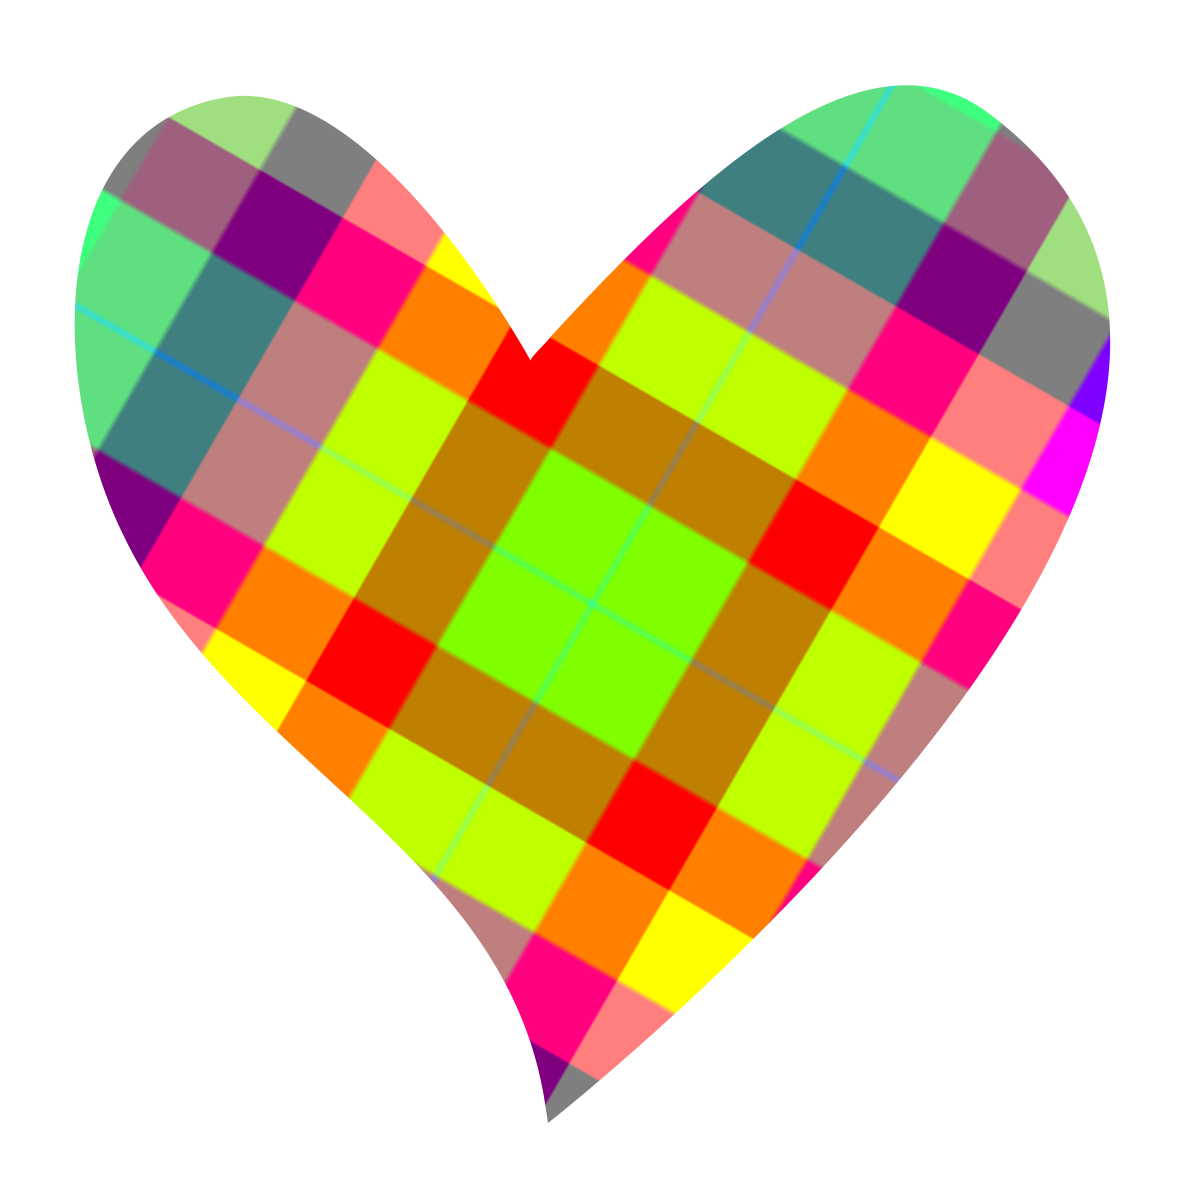 Heart-shaped clipart heart shape #13